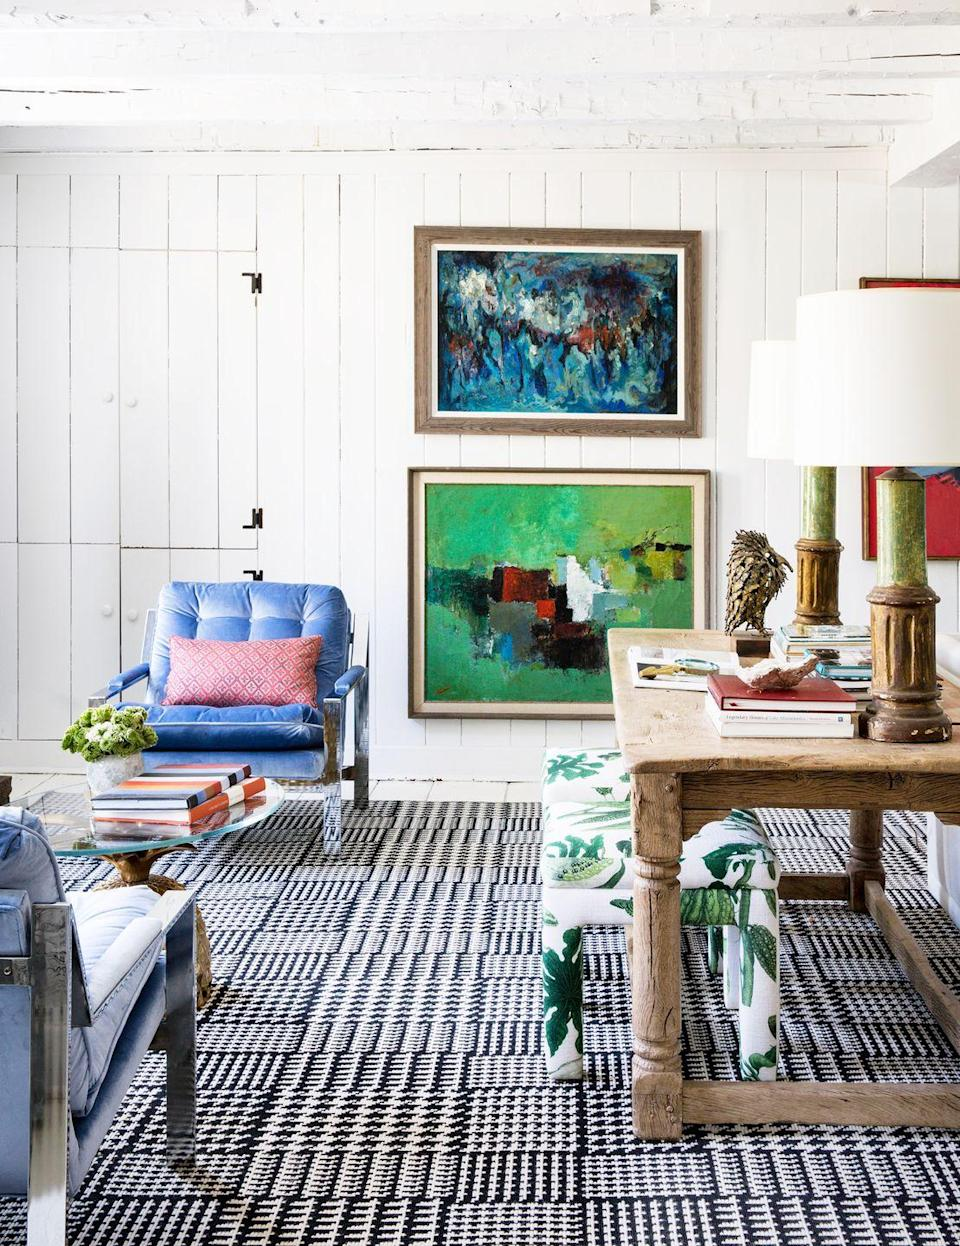 """<p>Interior designer <a href=""""https://andrewflesher.com/"""" rel=""""nofollow noopener"""" target=""""_blank"""" data-ylk=""""slk:Andrew Flesher"""" class=""""link rapid-noclick-resp"""">Andrew Flesher</a> restored his historic White Plains home with bursts of fun colors, unexpected pattern play (who knew banana leaf fabric and a tight houndstooth print carpet could complement each other so nicely?), and gallons of bright white paint. Consider it proof that you don't have to strip and replace all the the original wood surfaces to brighten and modernize a space so completely. The eclectic layering is such a nice way to honor the historic bones while marking its design forward present. </p>"""